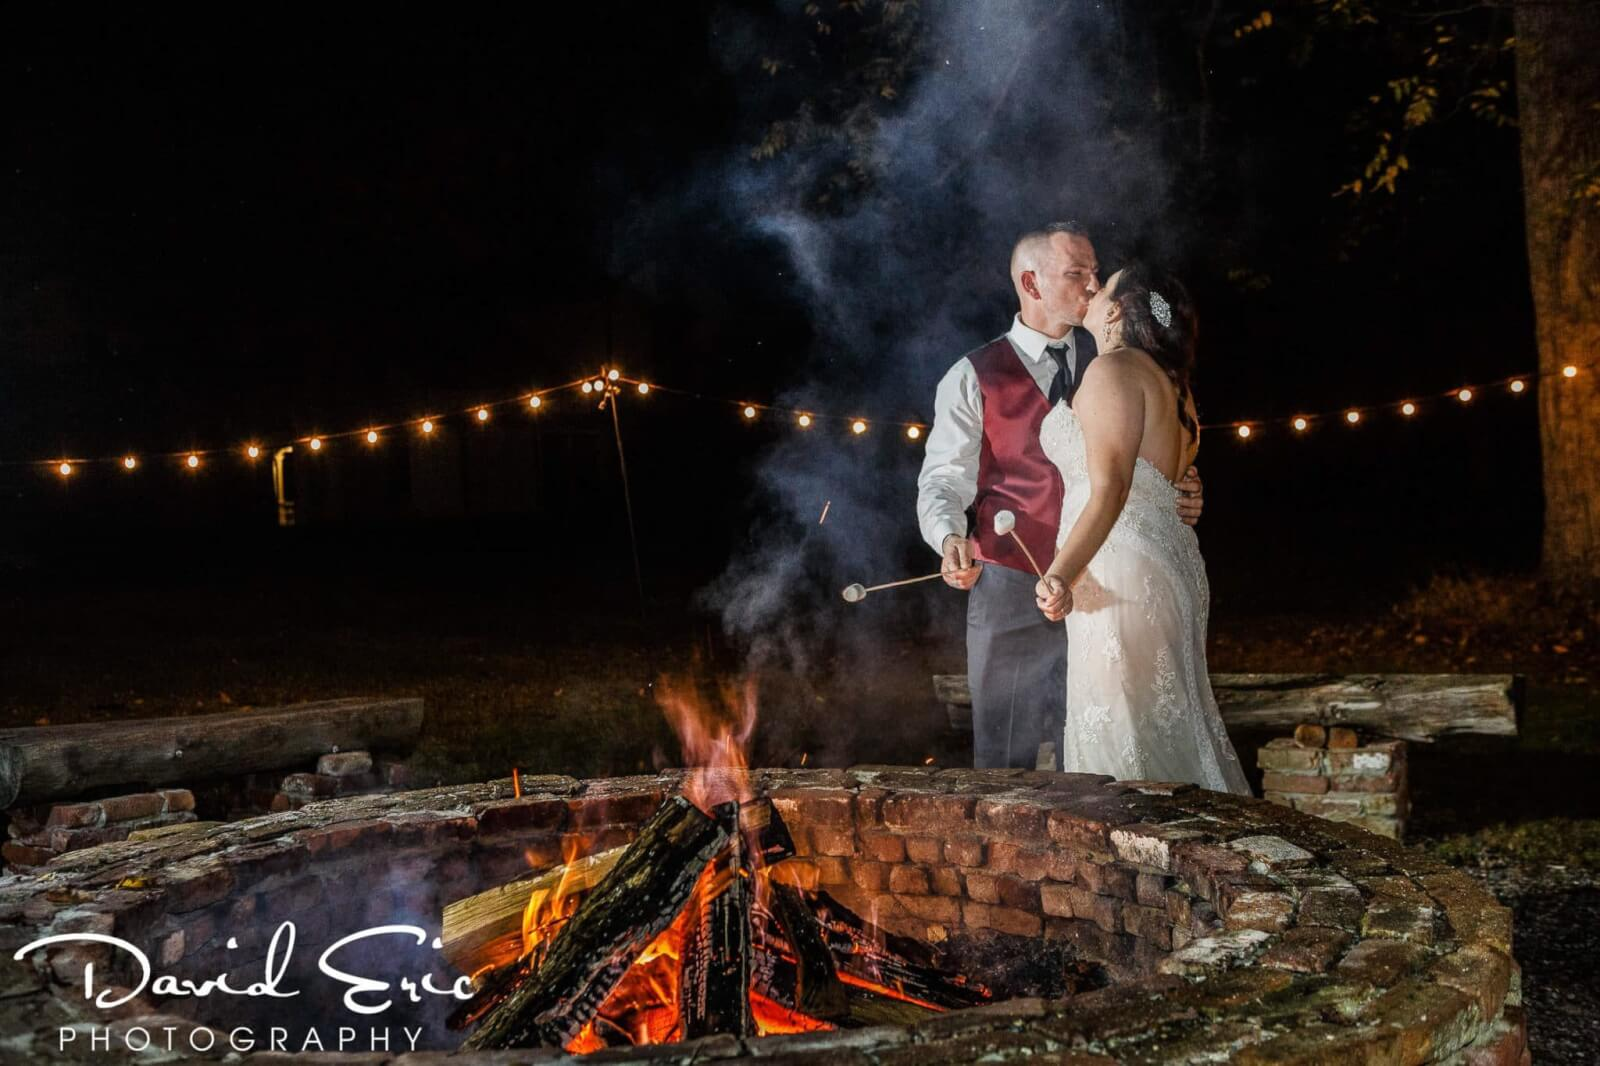 Wedding Venues New Jersey Waterloo Village bride and groom roasting marshmallows over the fire pit